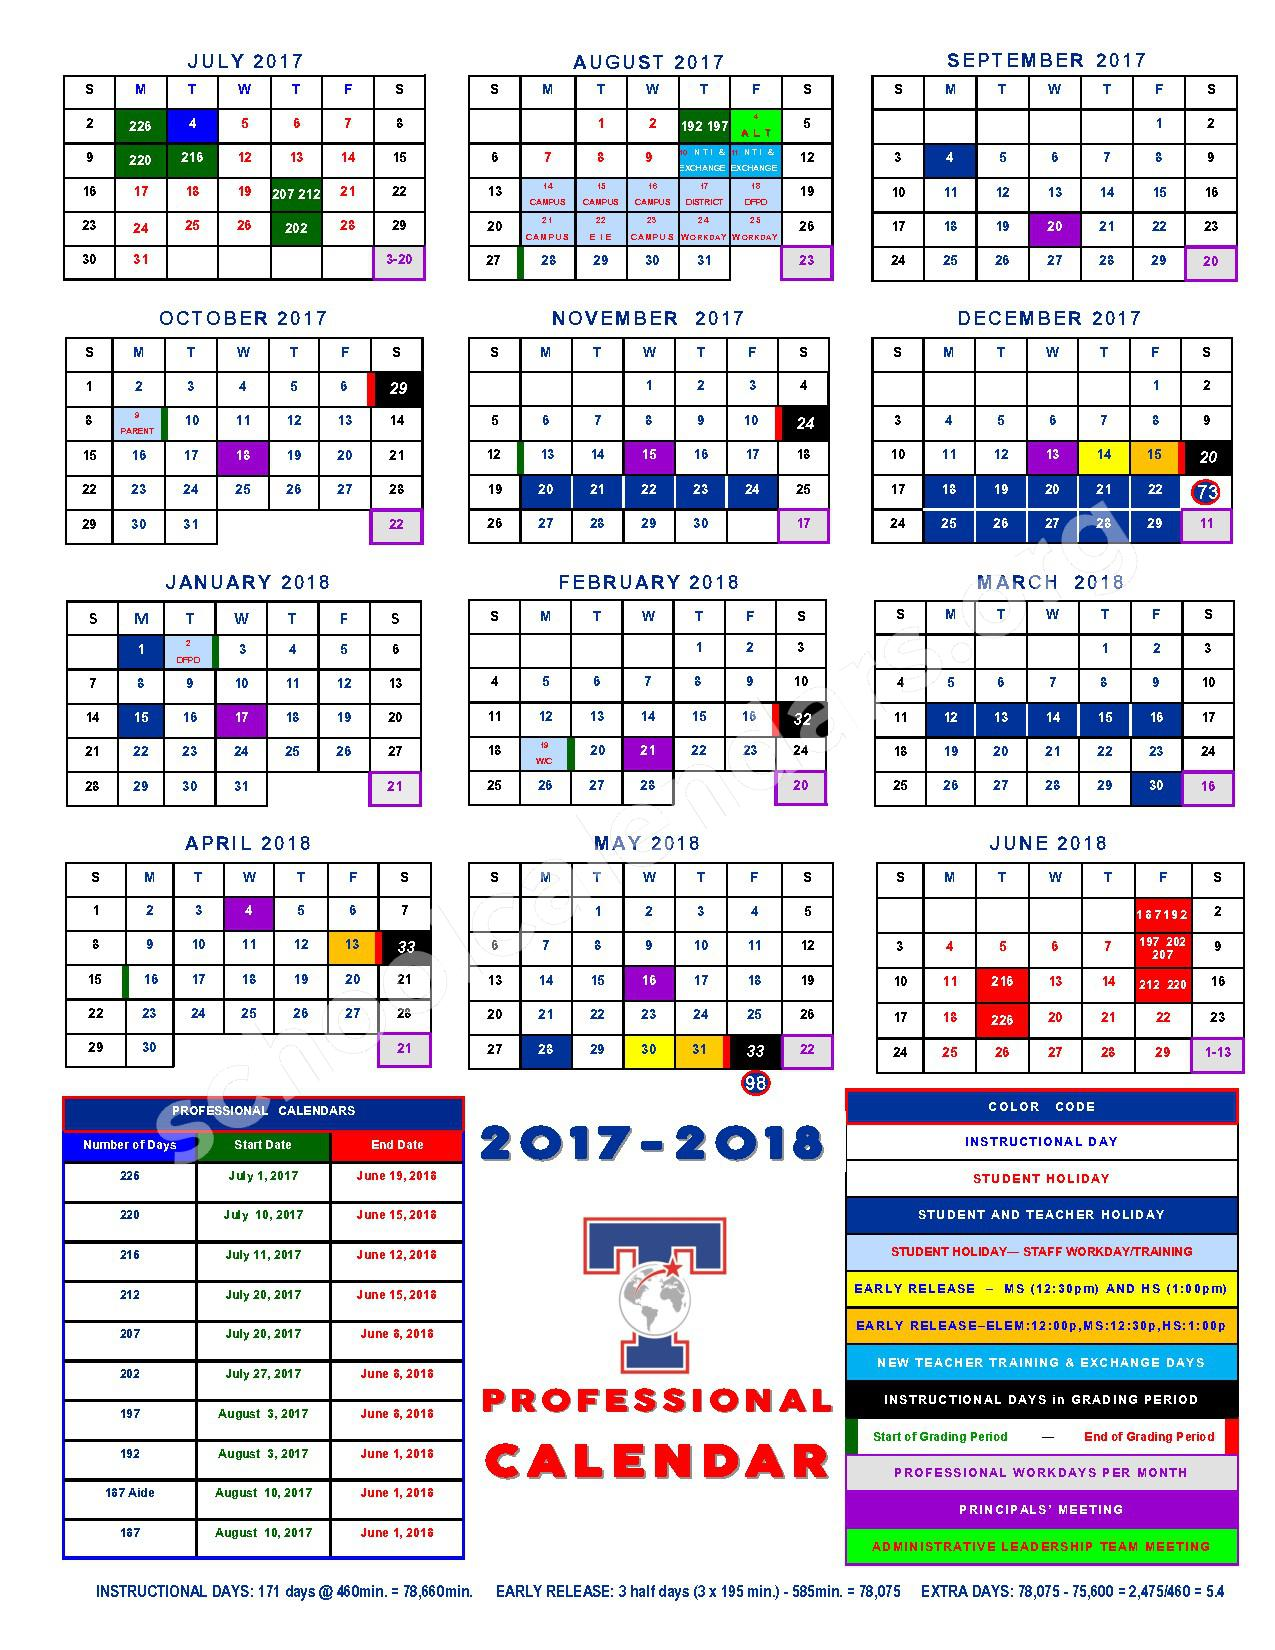 2017 - 2018 TISD Professional Calendar – Temple Independent School District – page 1